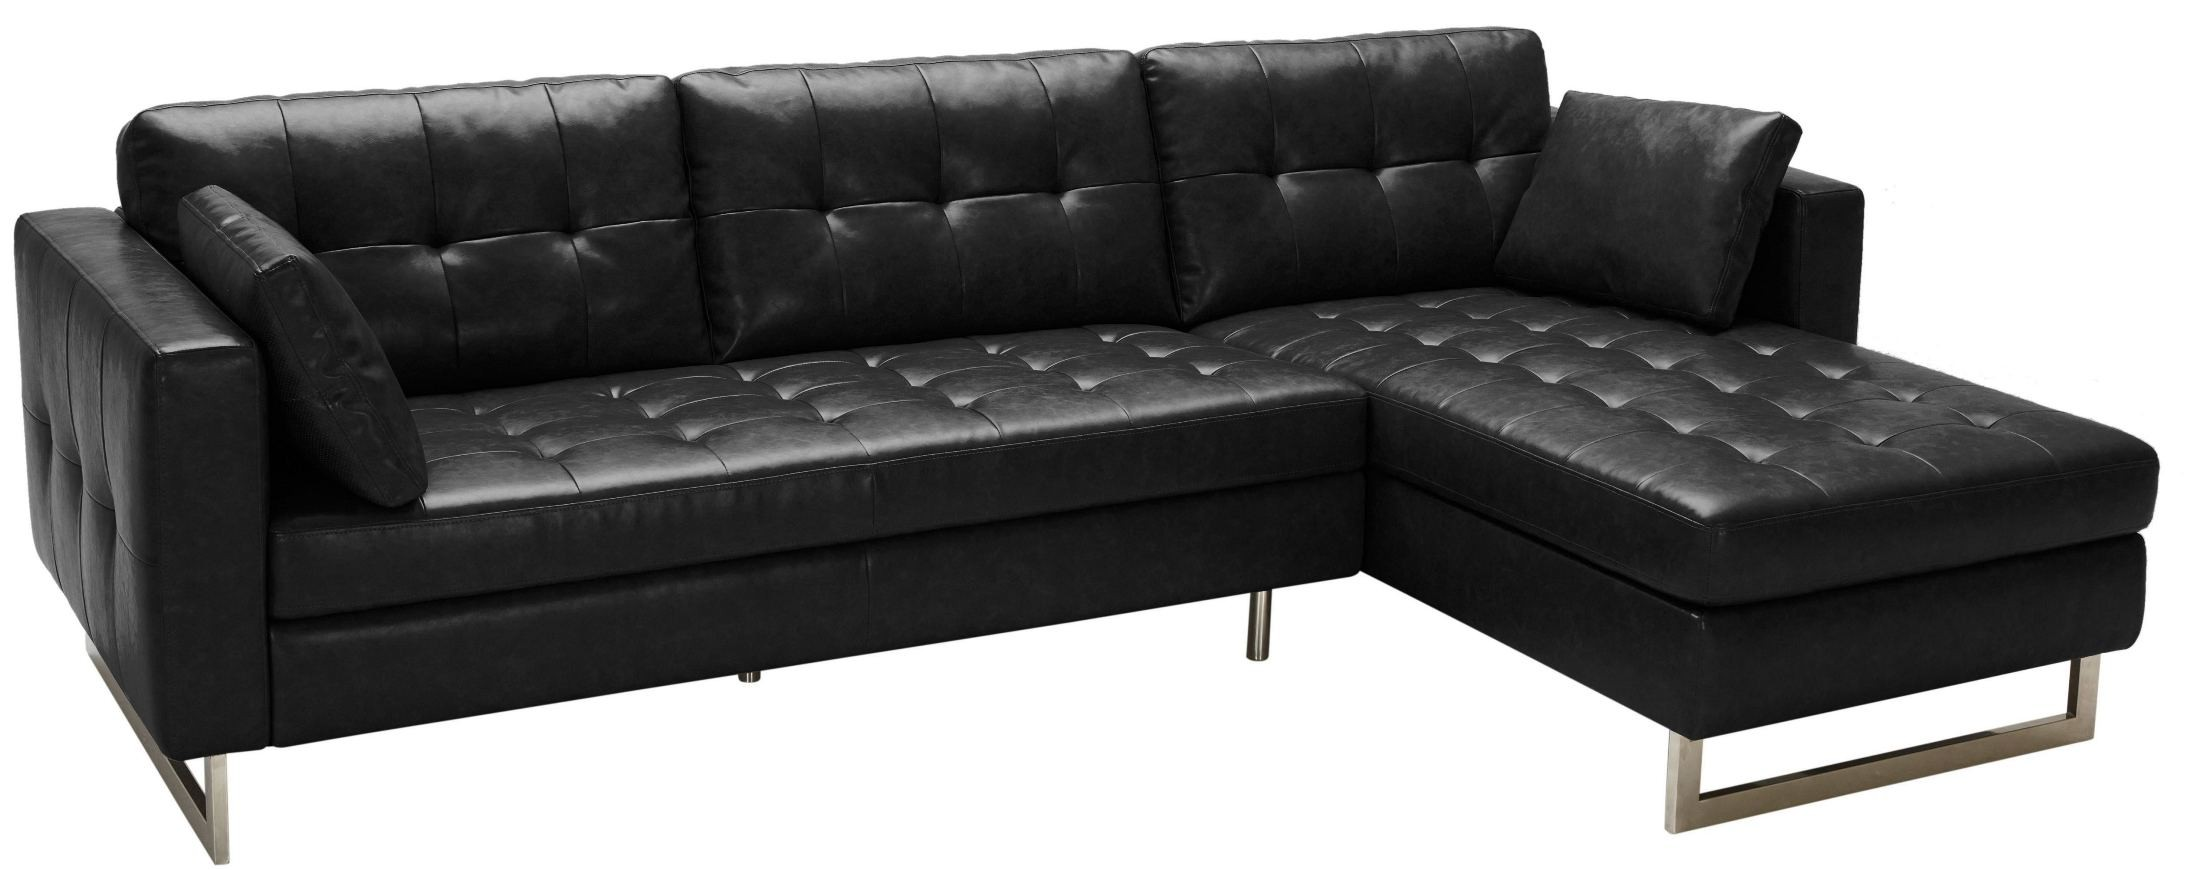 Wilson black fog leather sofa chaise 100833 sunpan for Black leather couch with chaise